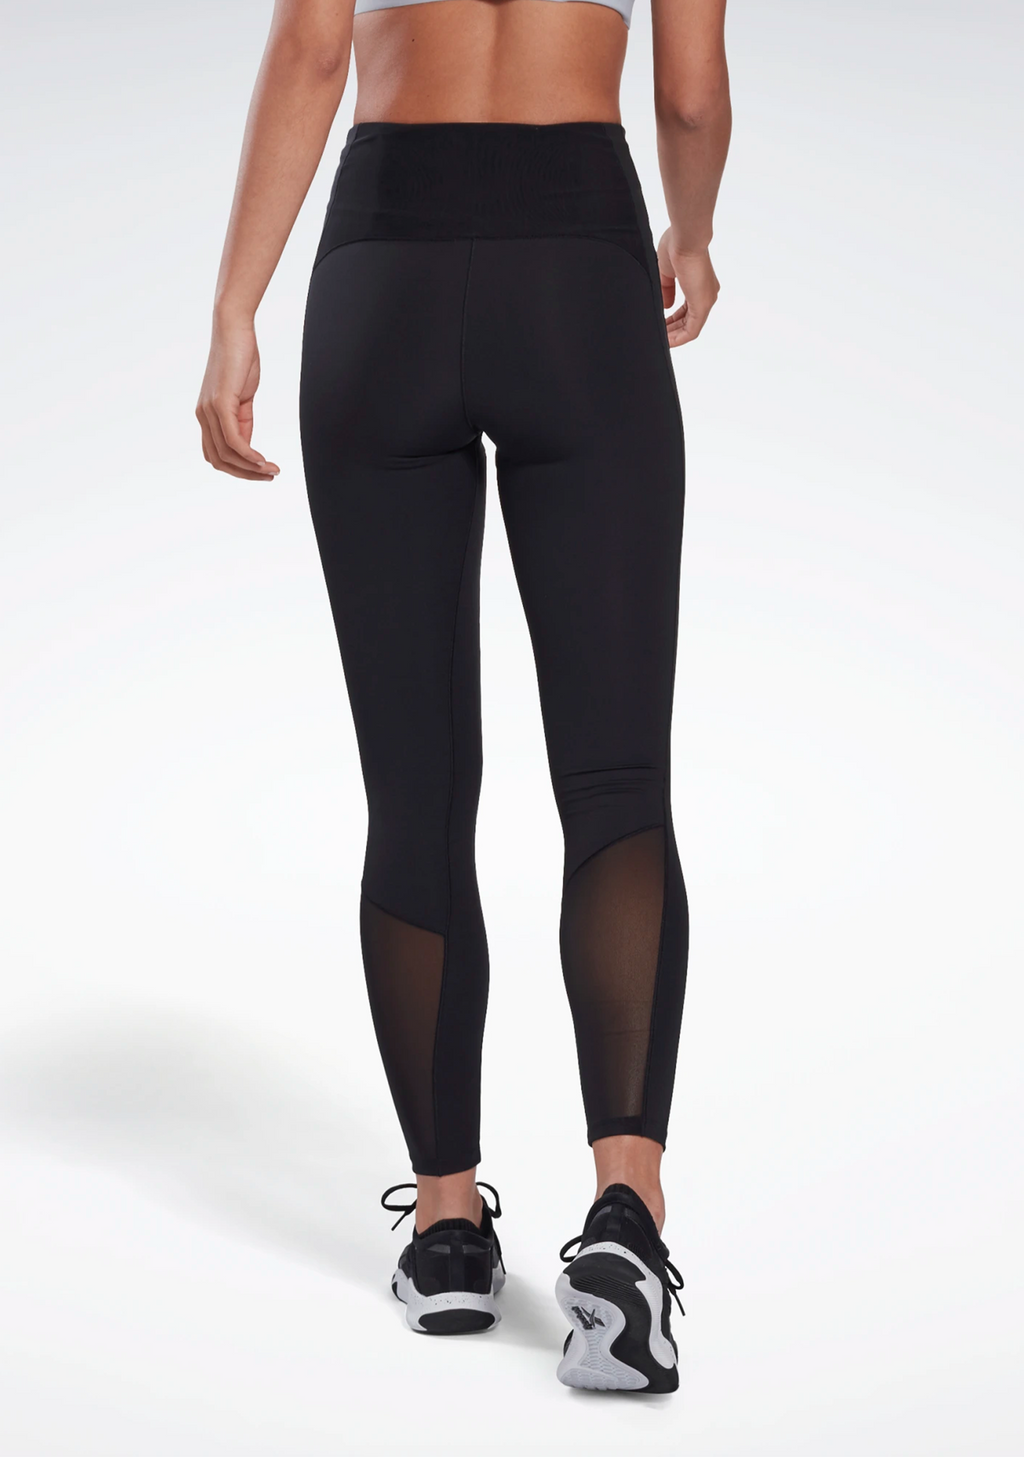 REEBOK WOMENS LUX PERFORM HIGH-RISE TIGHTS <br> FJ2870